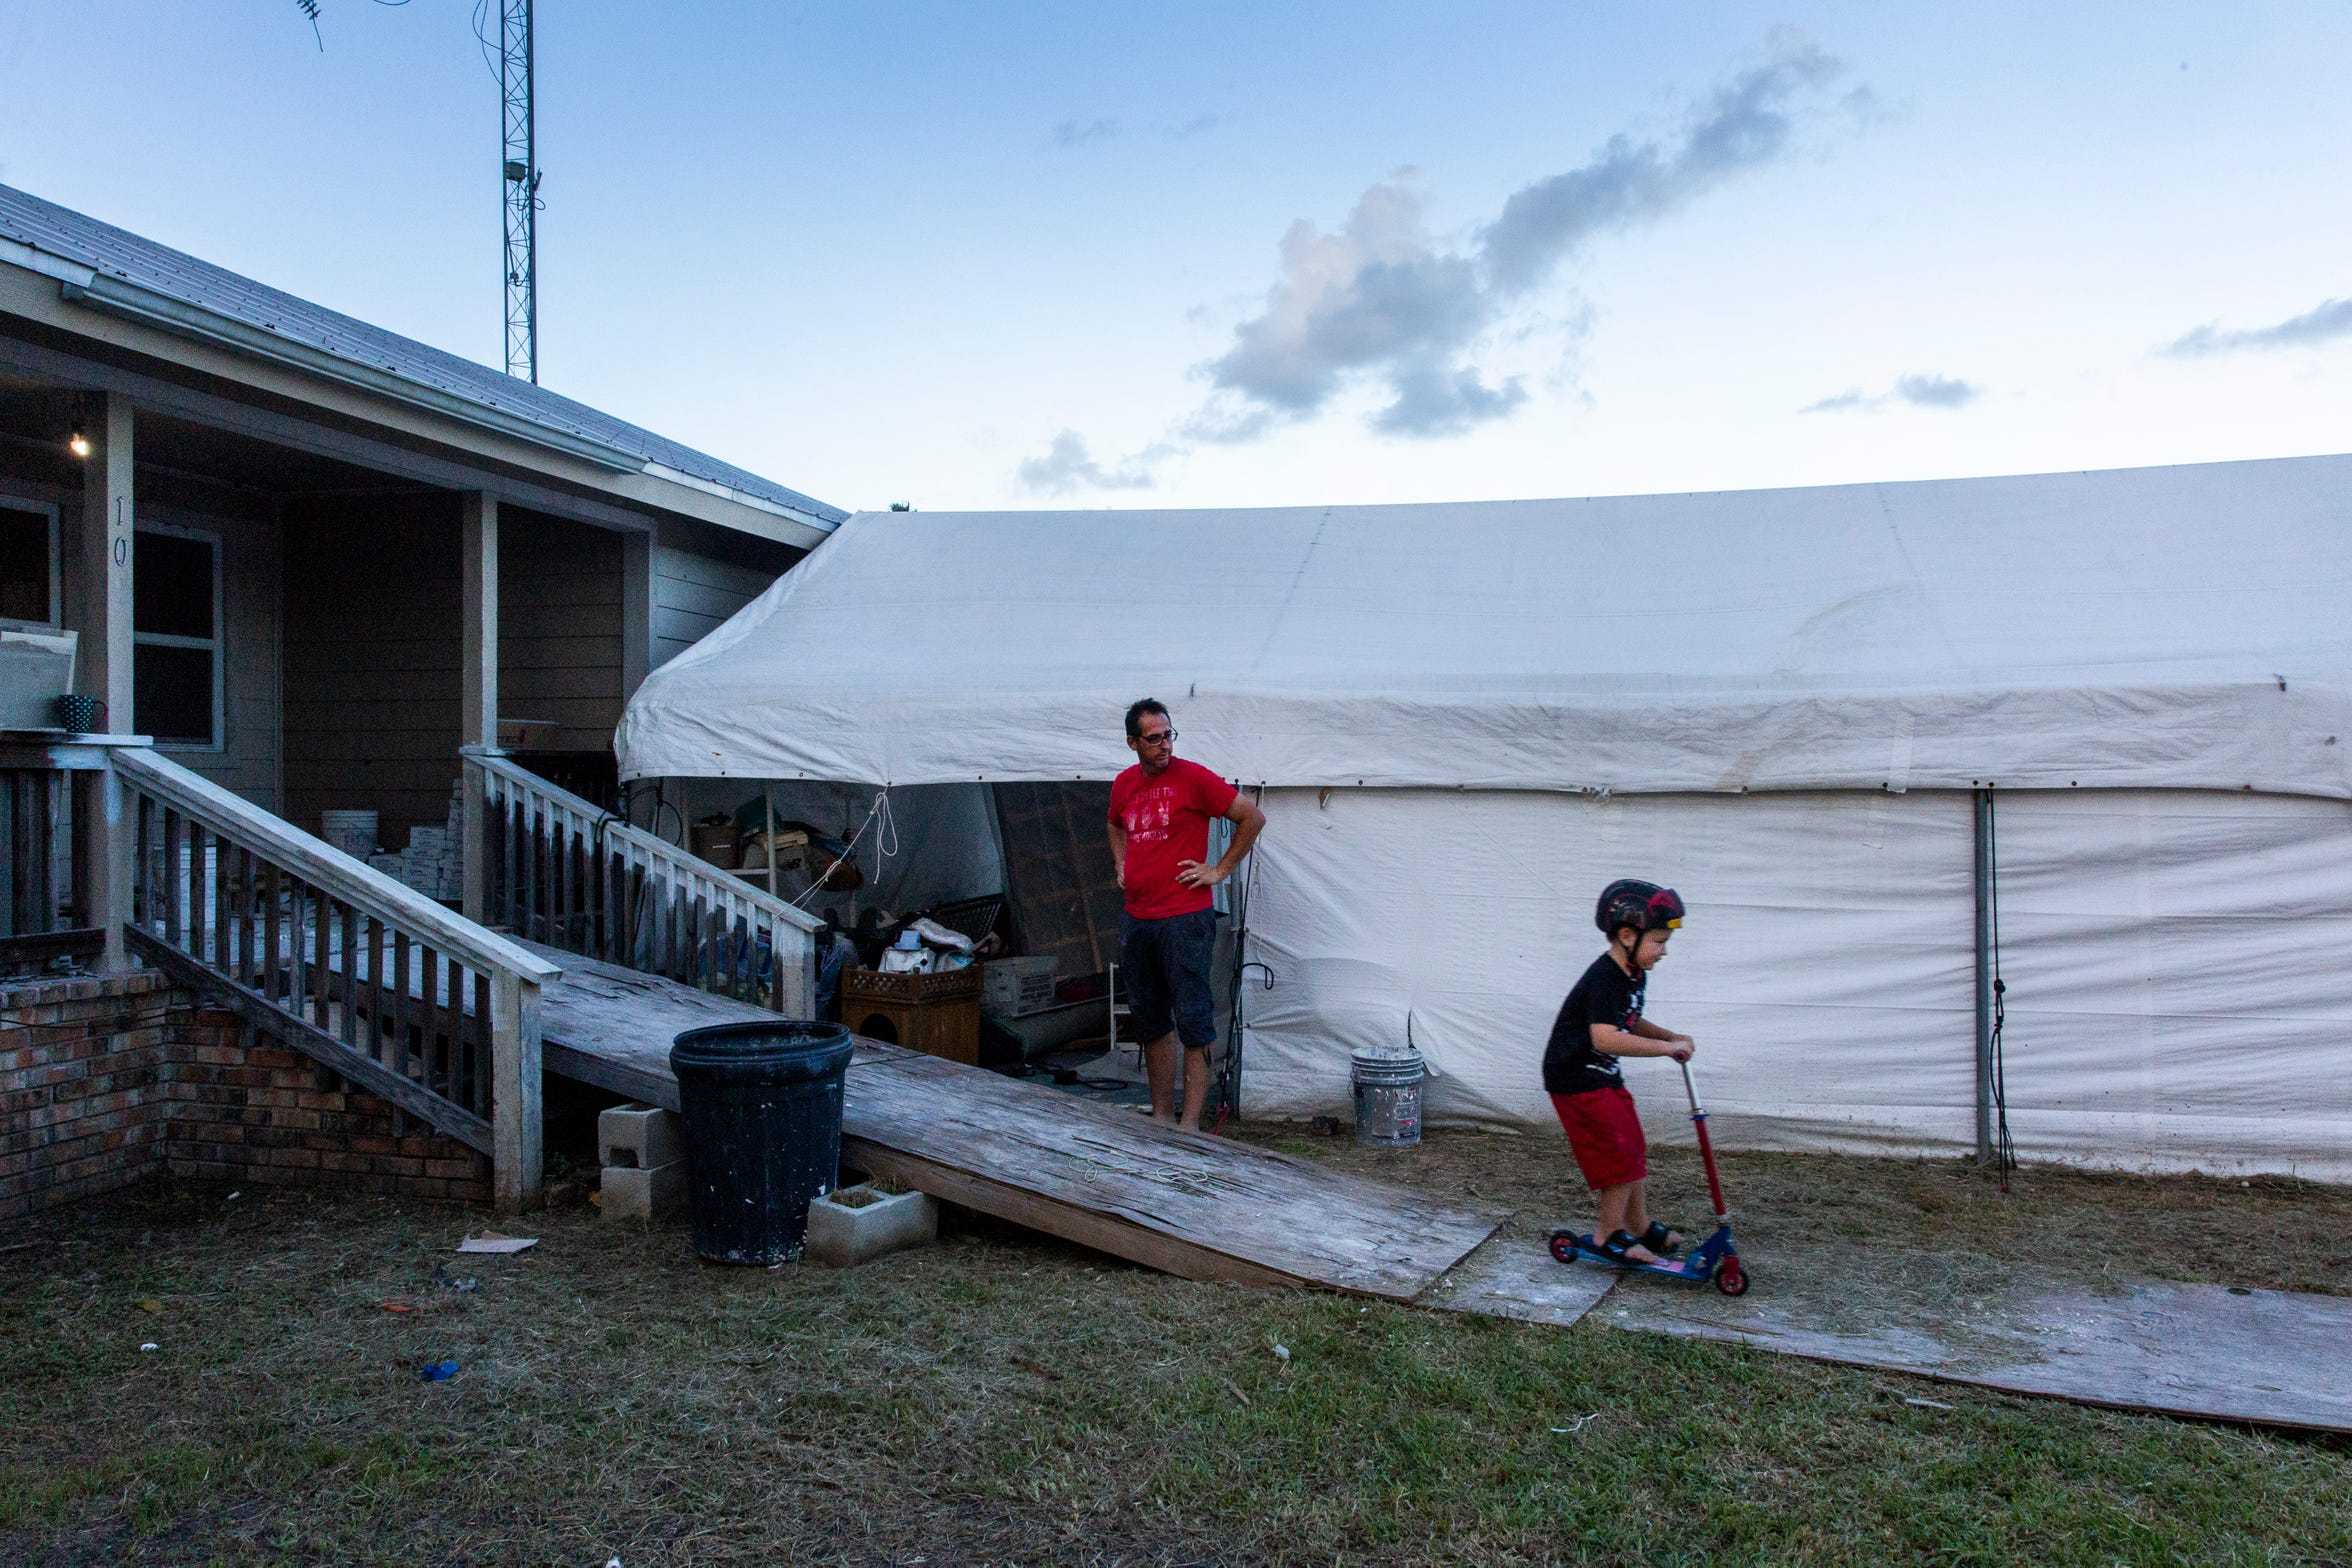 Wesley Mitchell watches over his son, Ace, as he plays outside their home in Everglades City on Thursday, Aug. 16, 2018.